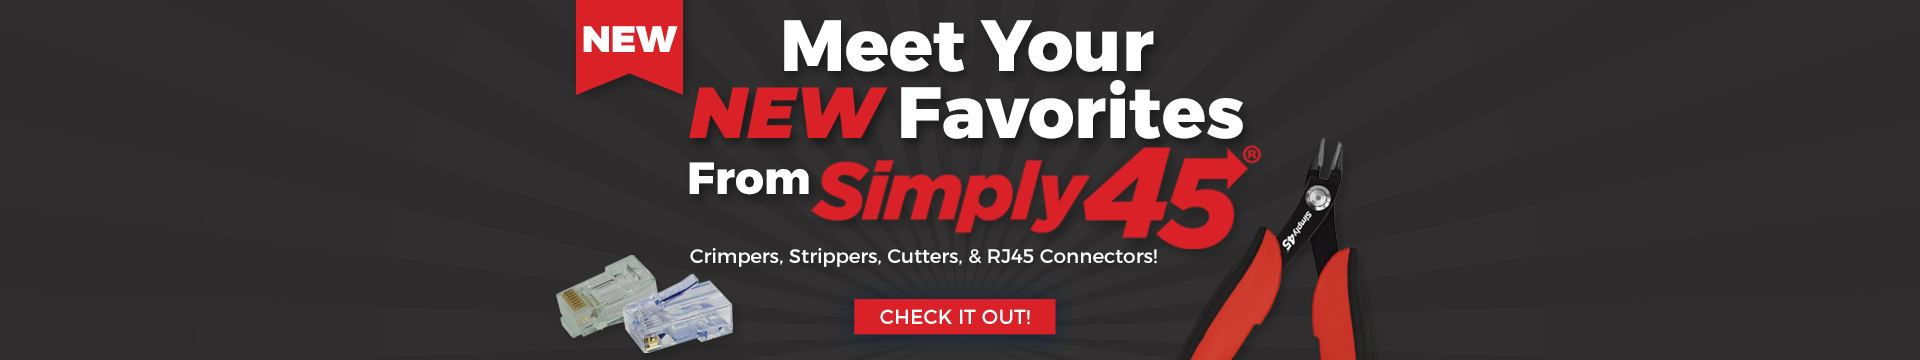 NEW Simply45® Products